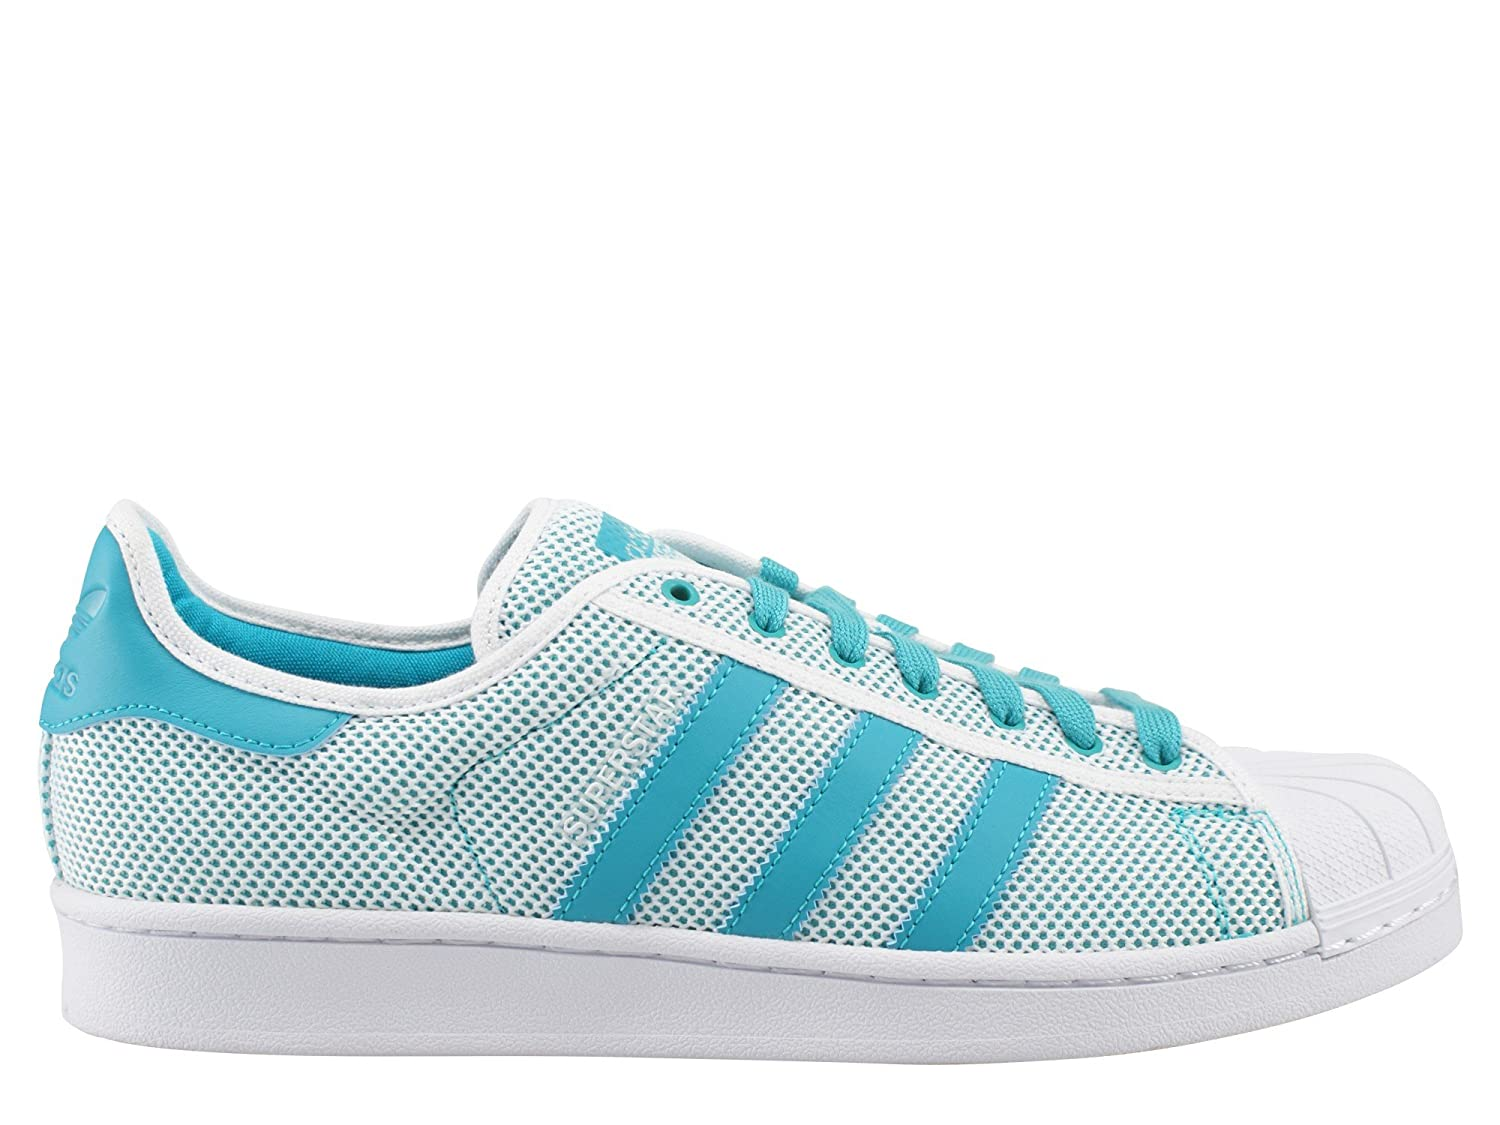 adidas Superstar Adicolor S76503, Turnschuhe  36 EU